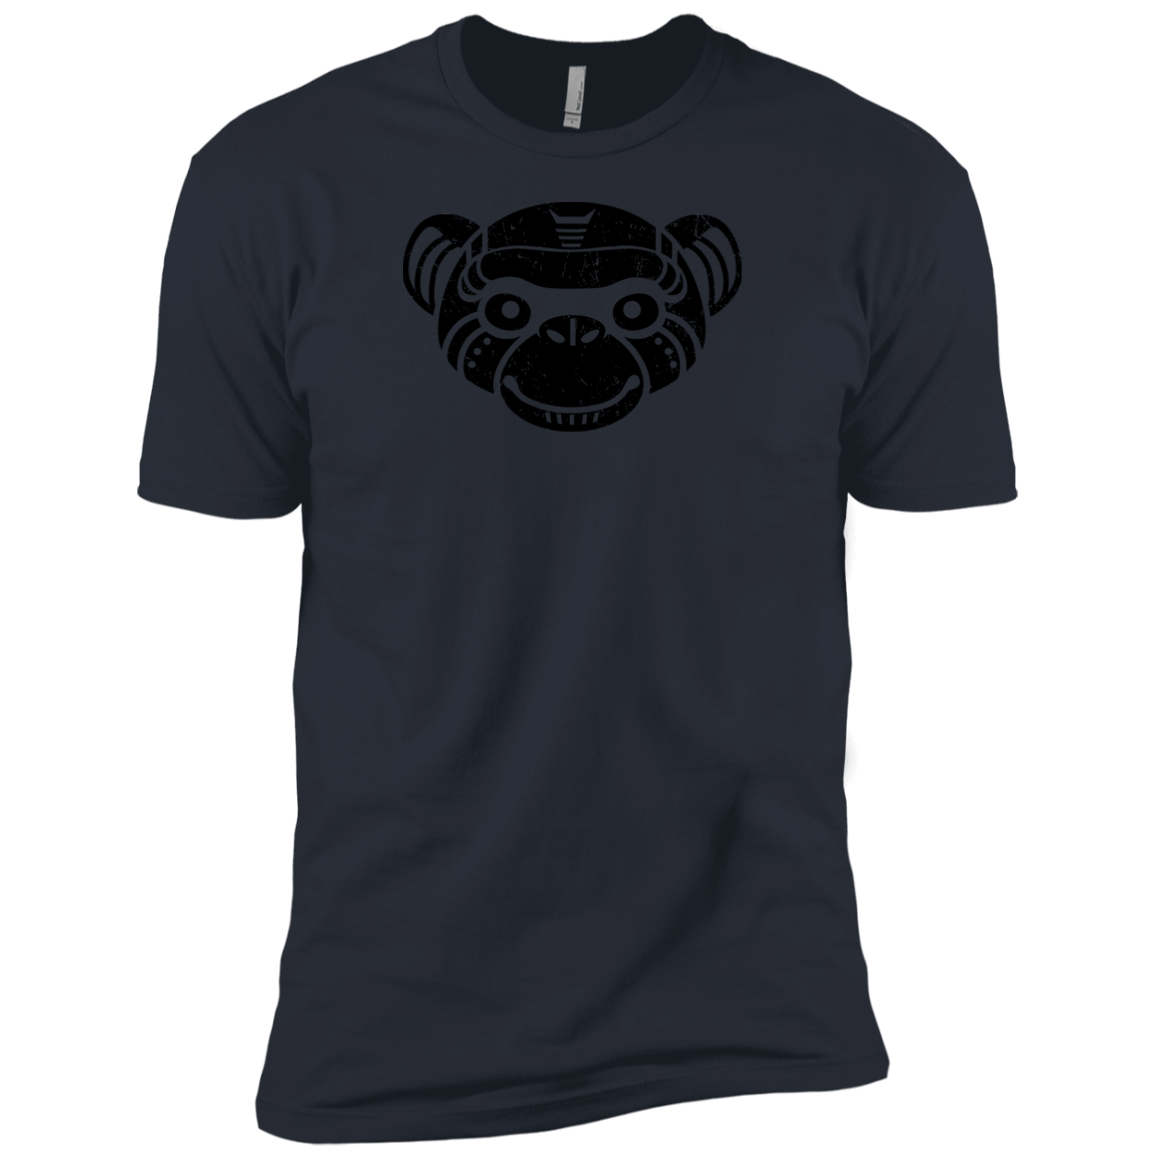 Black Distressed Emblem (Monkey/Fix)